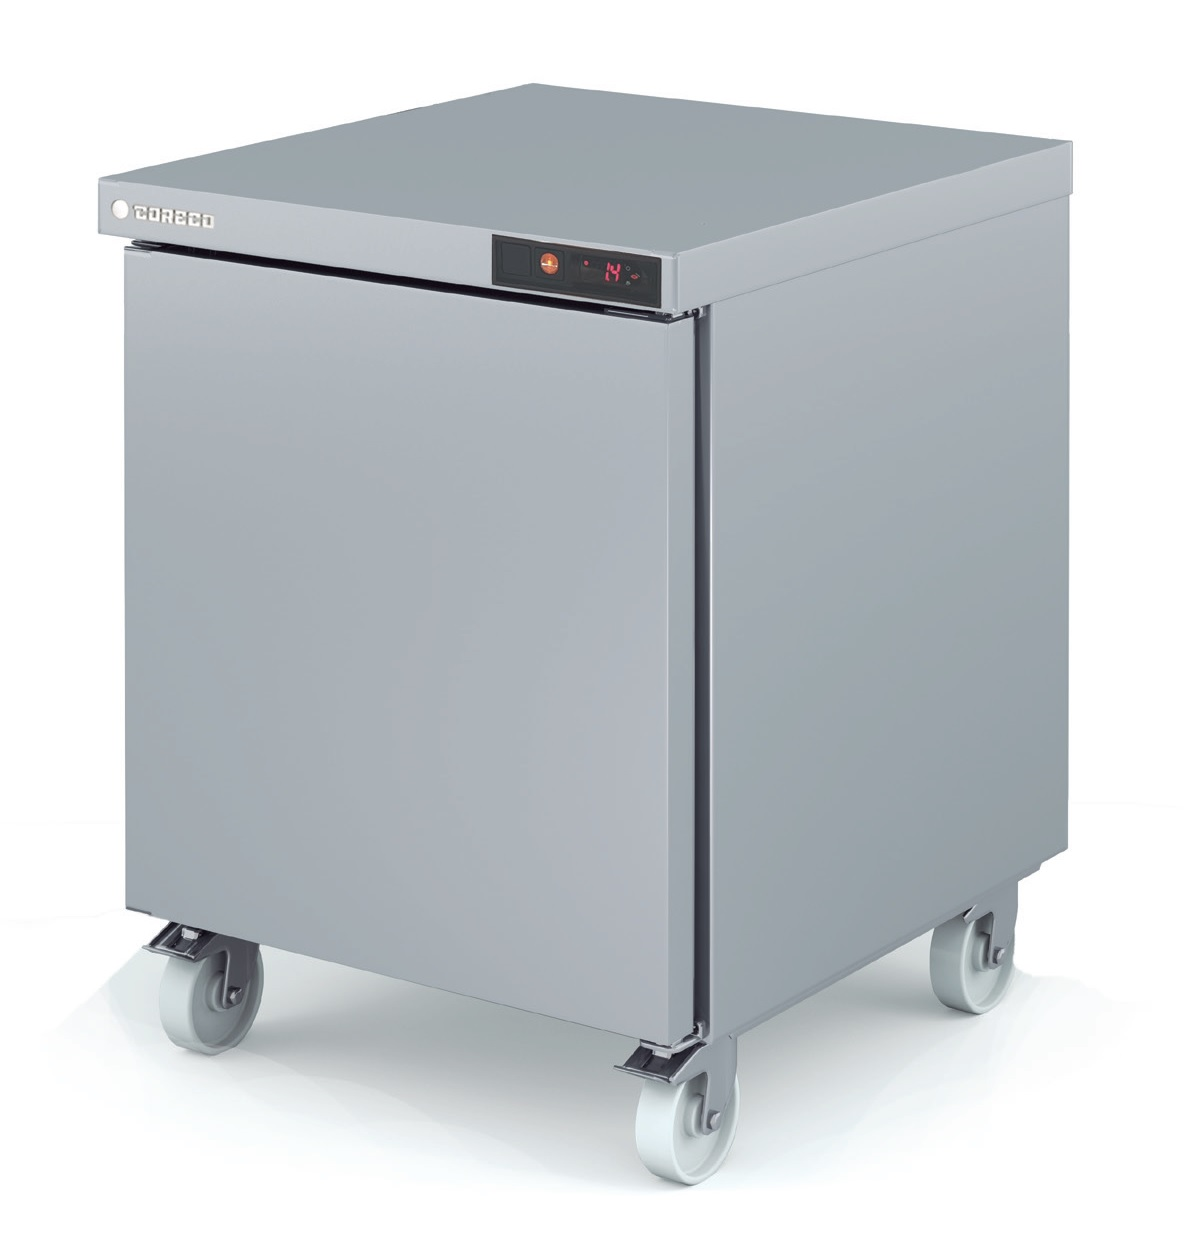 samaa commercial kitchen equipment